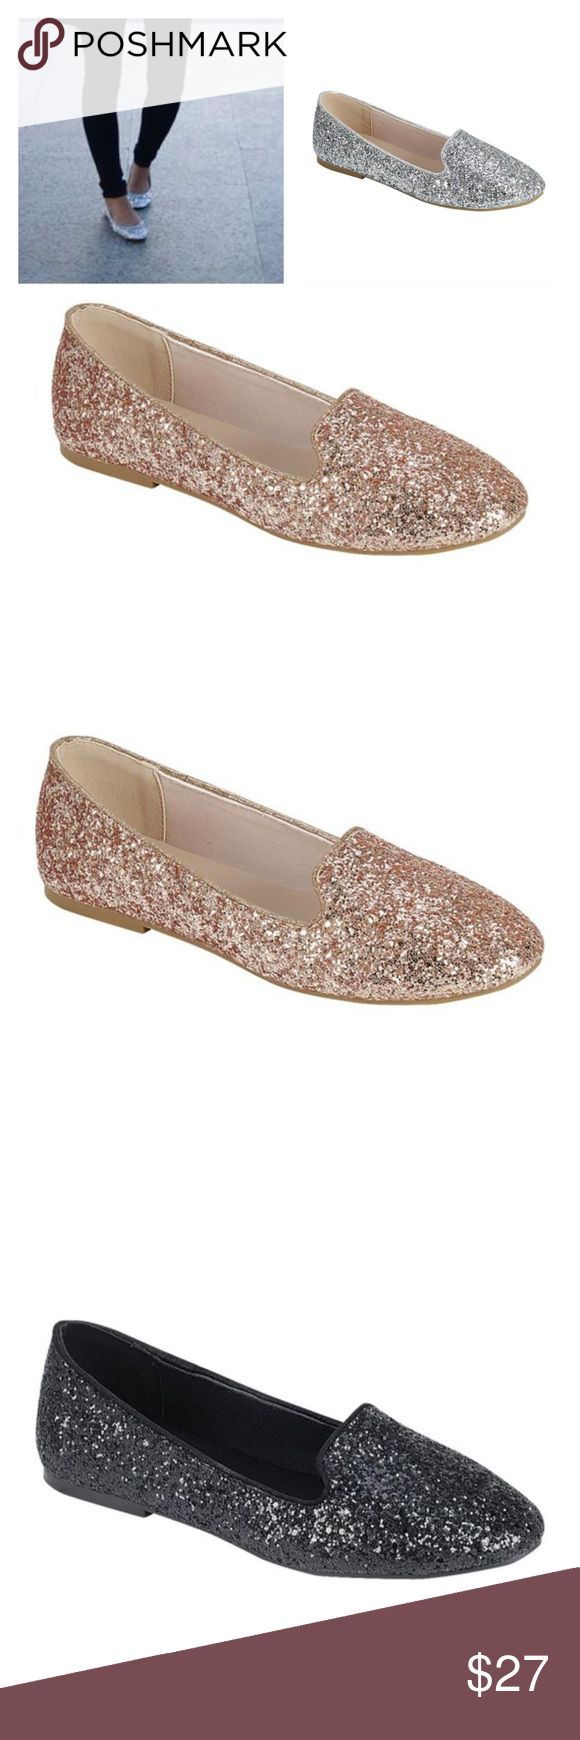 Rose Gold Glitter Loafers, Glitter Flats, 4 Colors Rose gold is in stock! Other colors Arrives Soon- Trending pair of vegan leather glitter flats. These go with almost anything! Pair with jeans and a tops or a dress. Available in rose gold, gold, black, and silver. Unlabeled sizes are for the rose golds. Price is firm unless bundled. Thank you 💕 Shoes Flats & Loafers